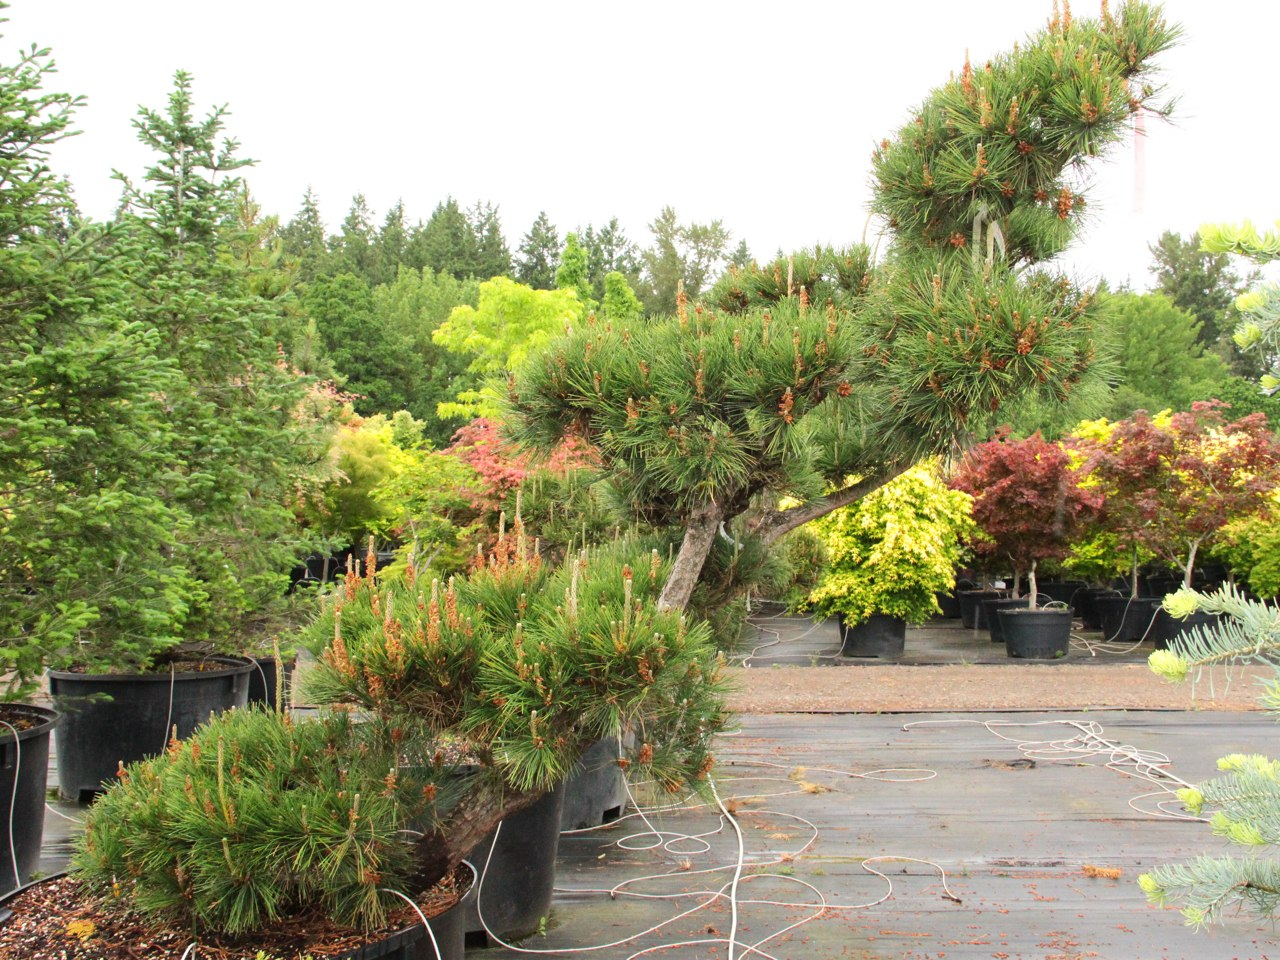 This irregular-growing species is iconic in Japanese gardens for its windswept habit and sculptural branching structure. The long dark-green needles and furrowed bark make for quite stunning specimens as they age.